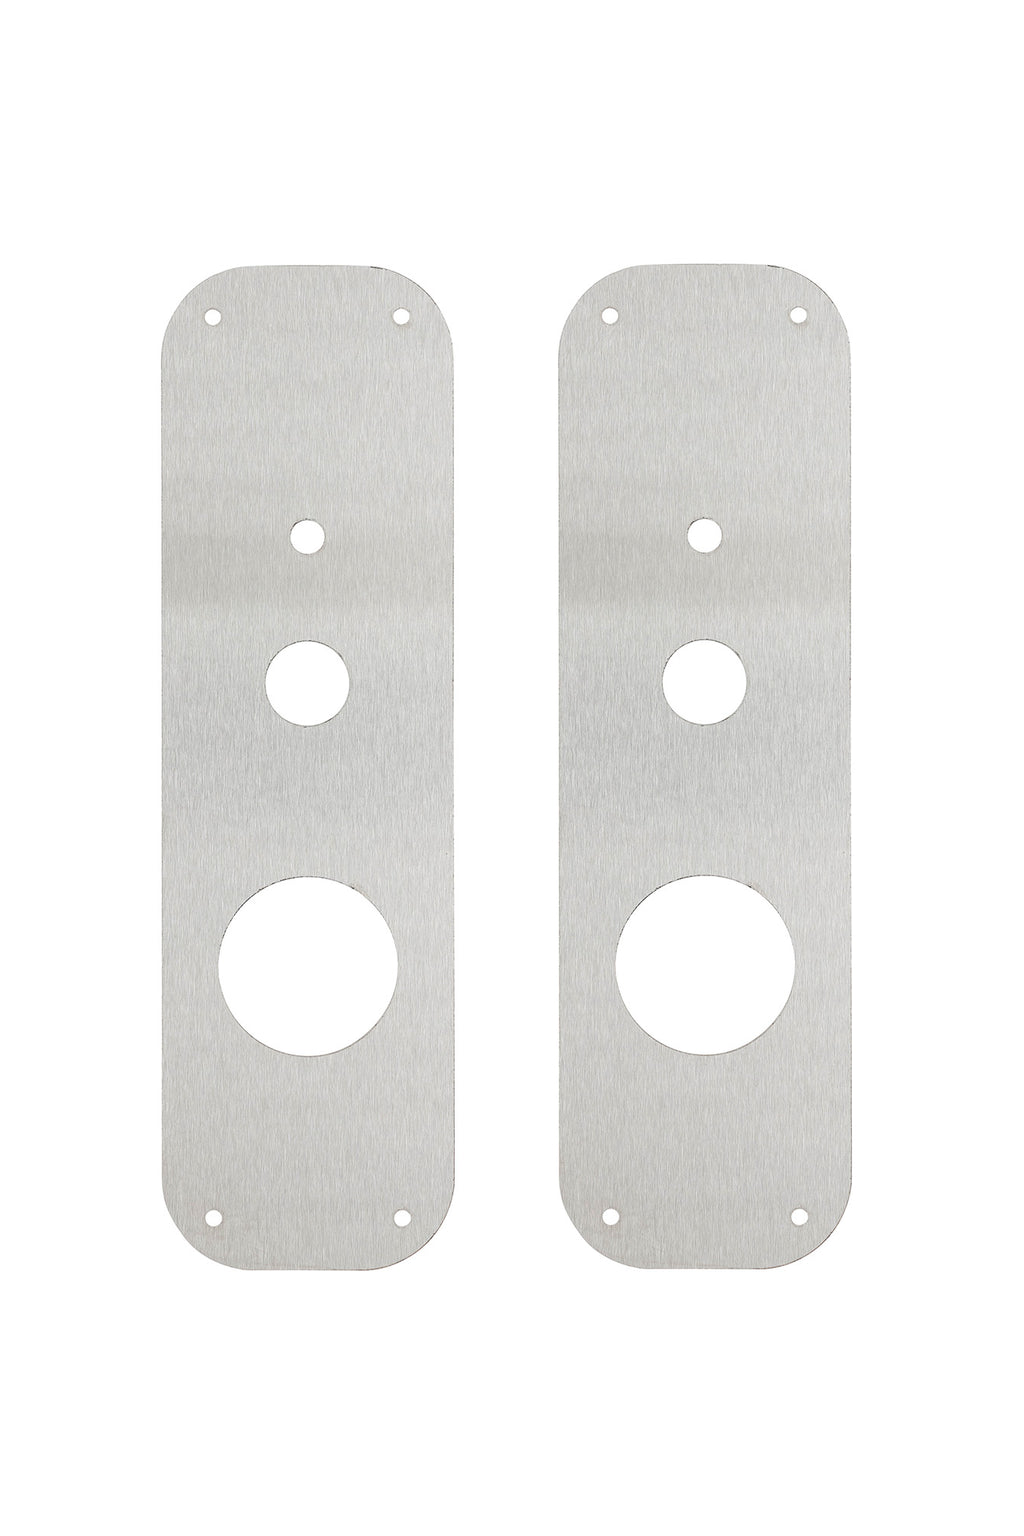 RemoteLock OpenEdge BG - Coverplates